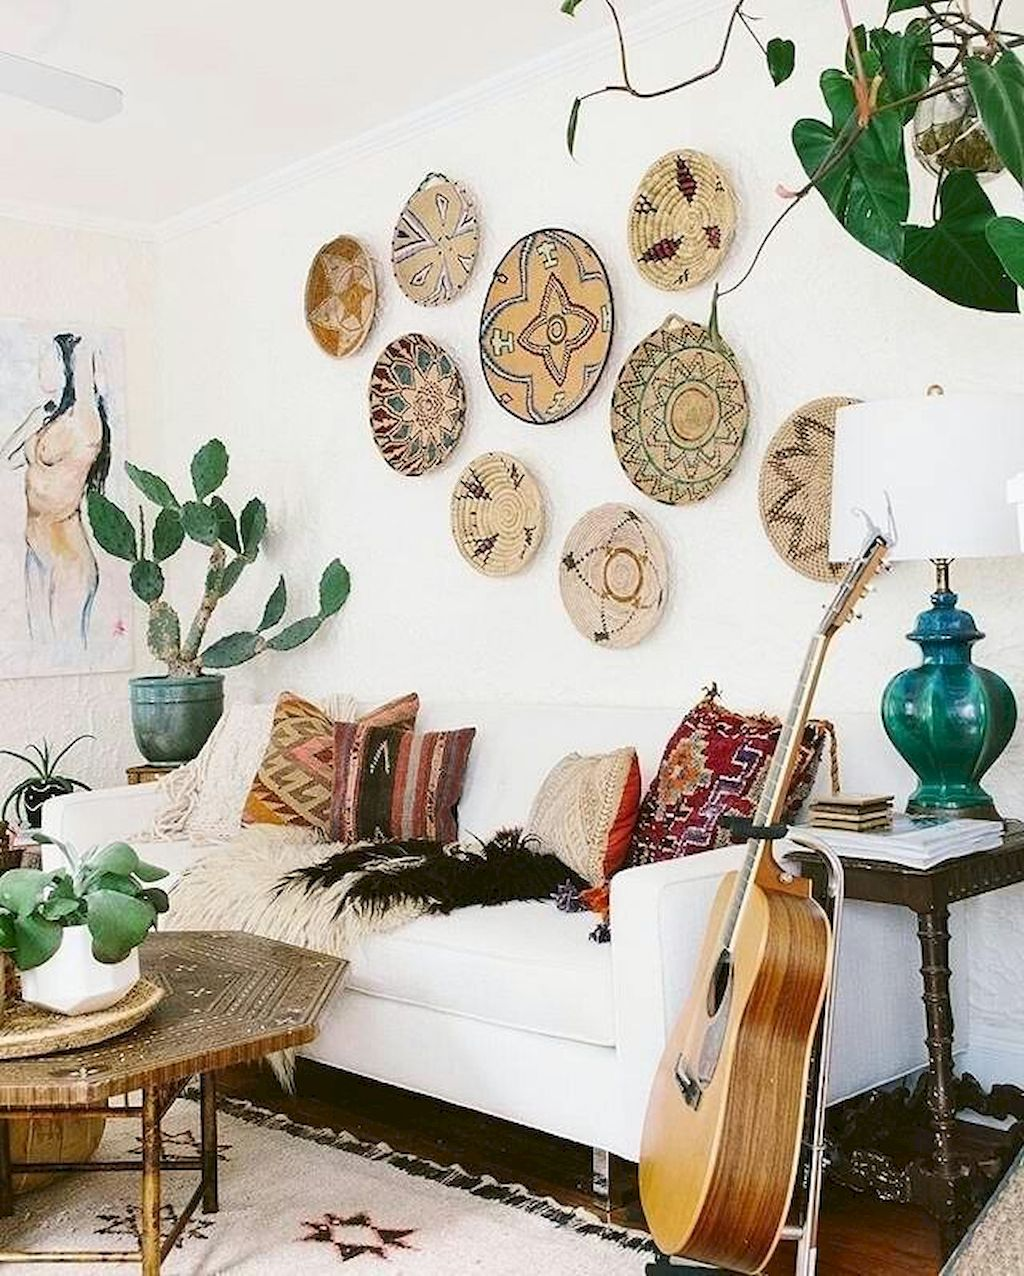 Collectibles as inspiration for wall art in the living room.  Source: willieclancyfestival.com